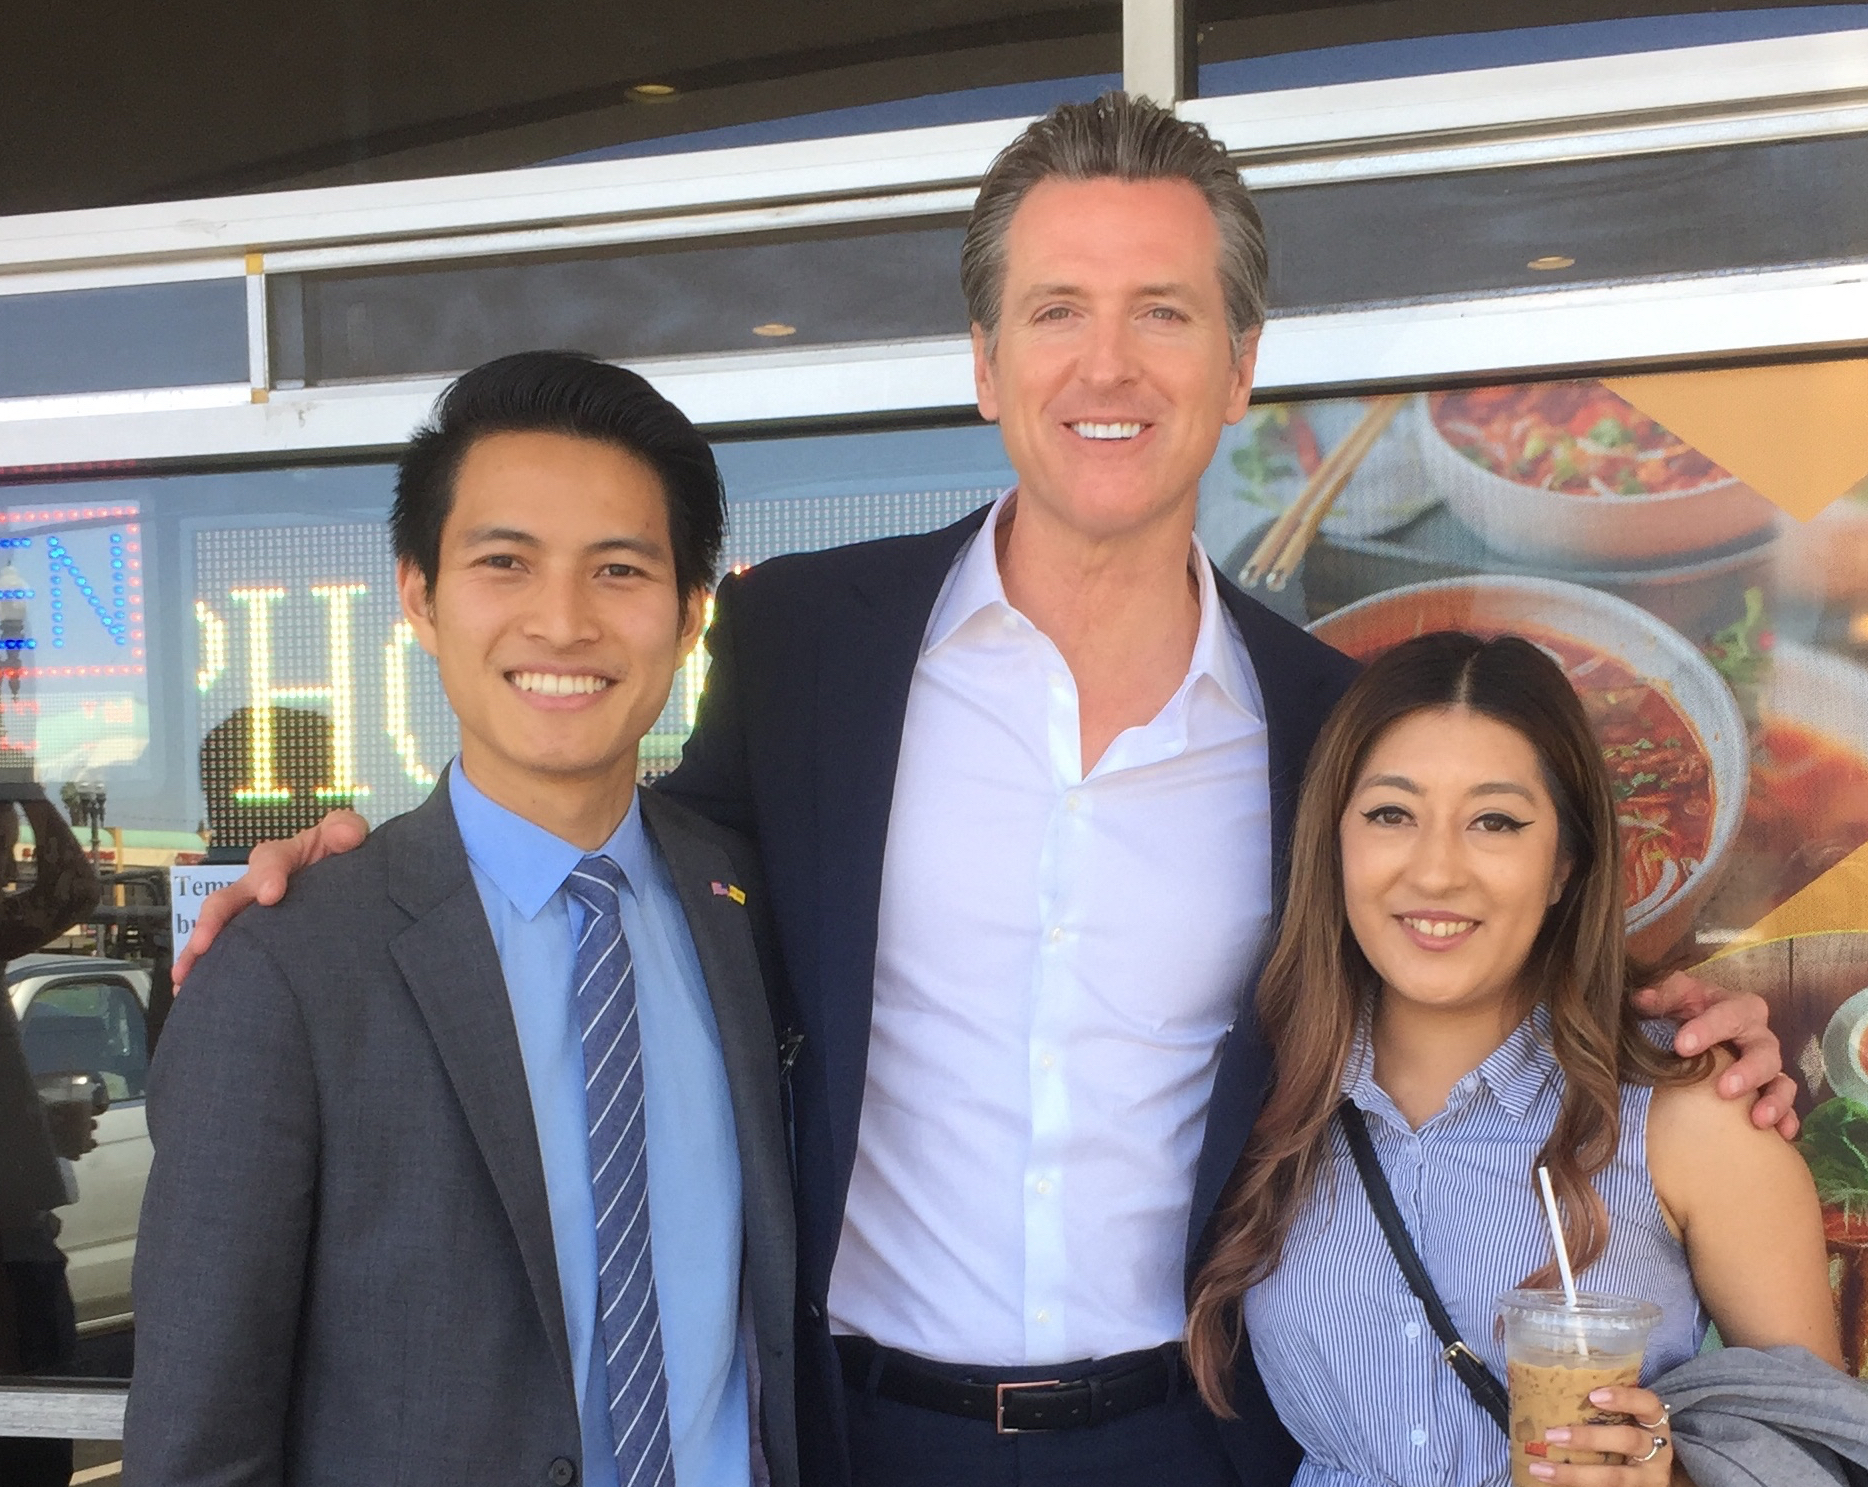 Matt led a policy team to advise Governor Gavin Newsom's transition team.